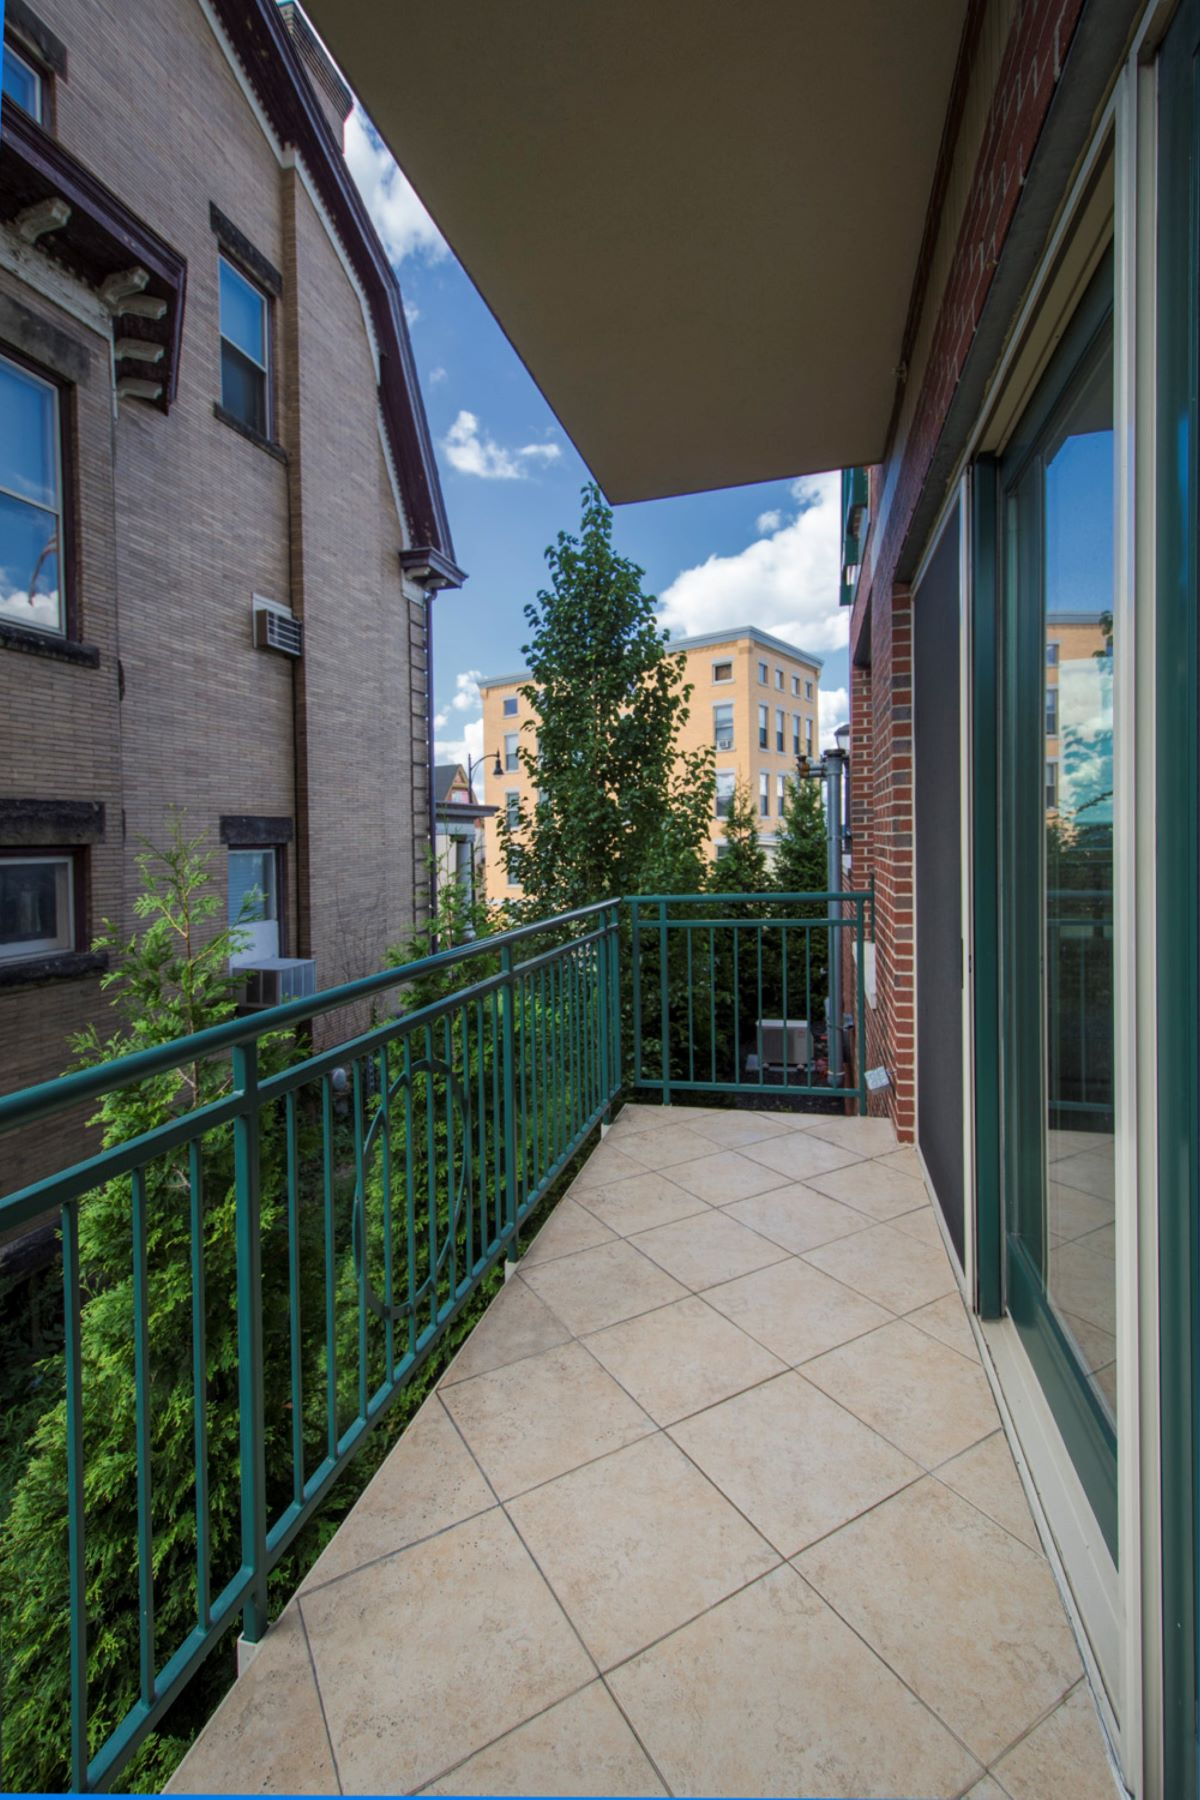 Additional photo for property listing at Mt. Washington Living at 501 Grandview, 2001 501 Grandview Unit 2002 Pittsburgh, Pennsylvania 15211 United States